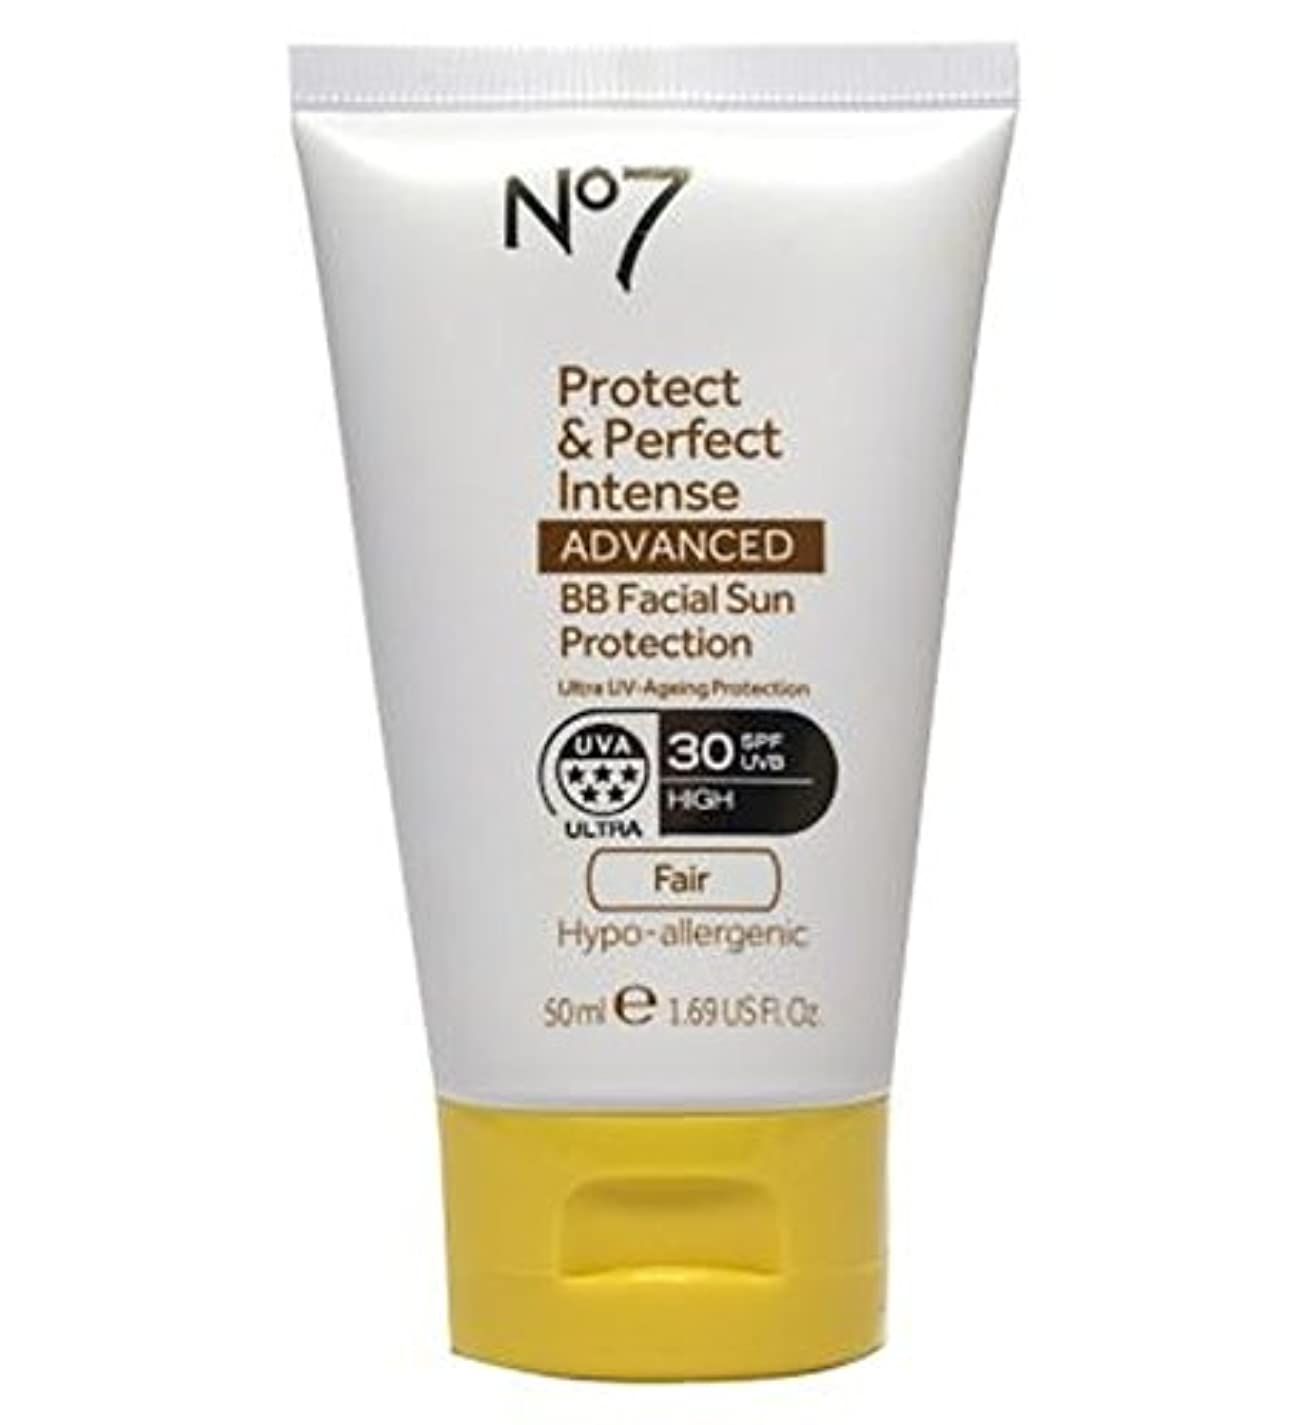 質素な説明ポジションNo7 Protect & Perfect Intense ADVANCED BB Facial Sun Protection SPF30 Light 50ml - No7保護&完璧な強烈な先進Bb顔の日焼け防止Spf30...